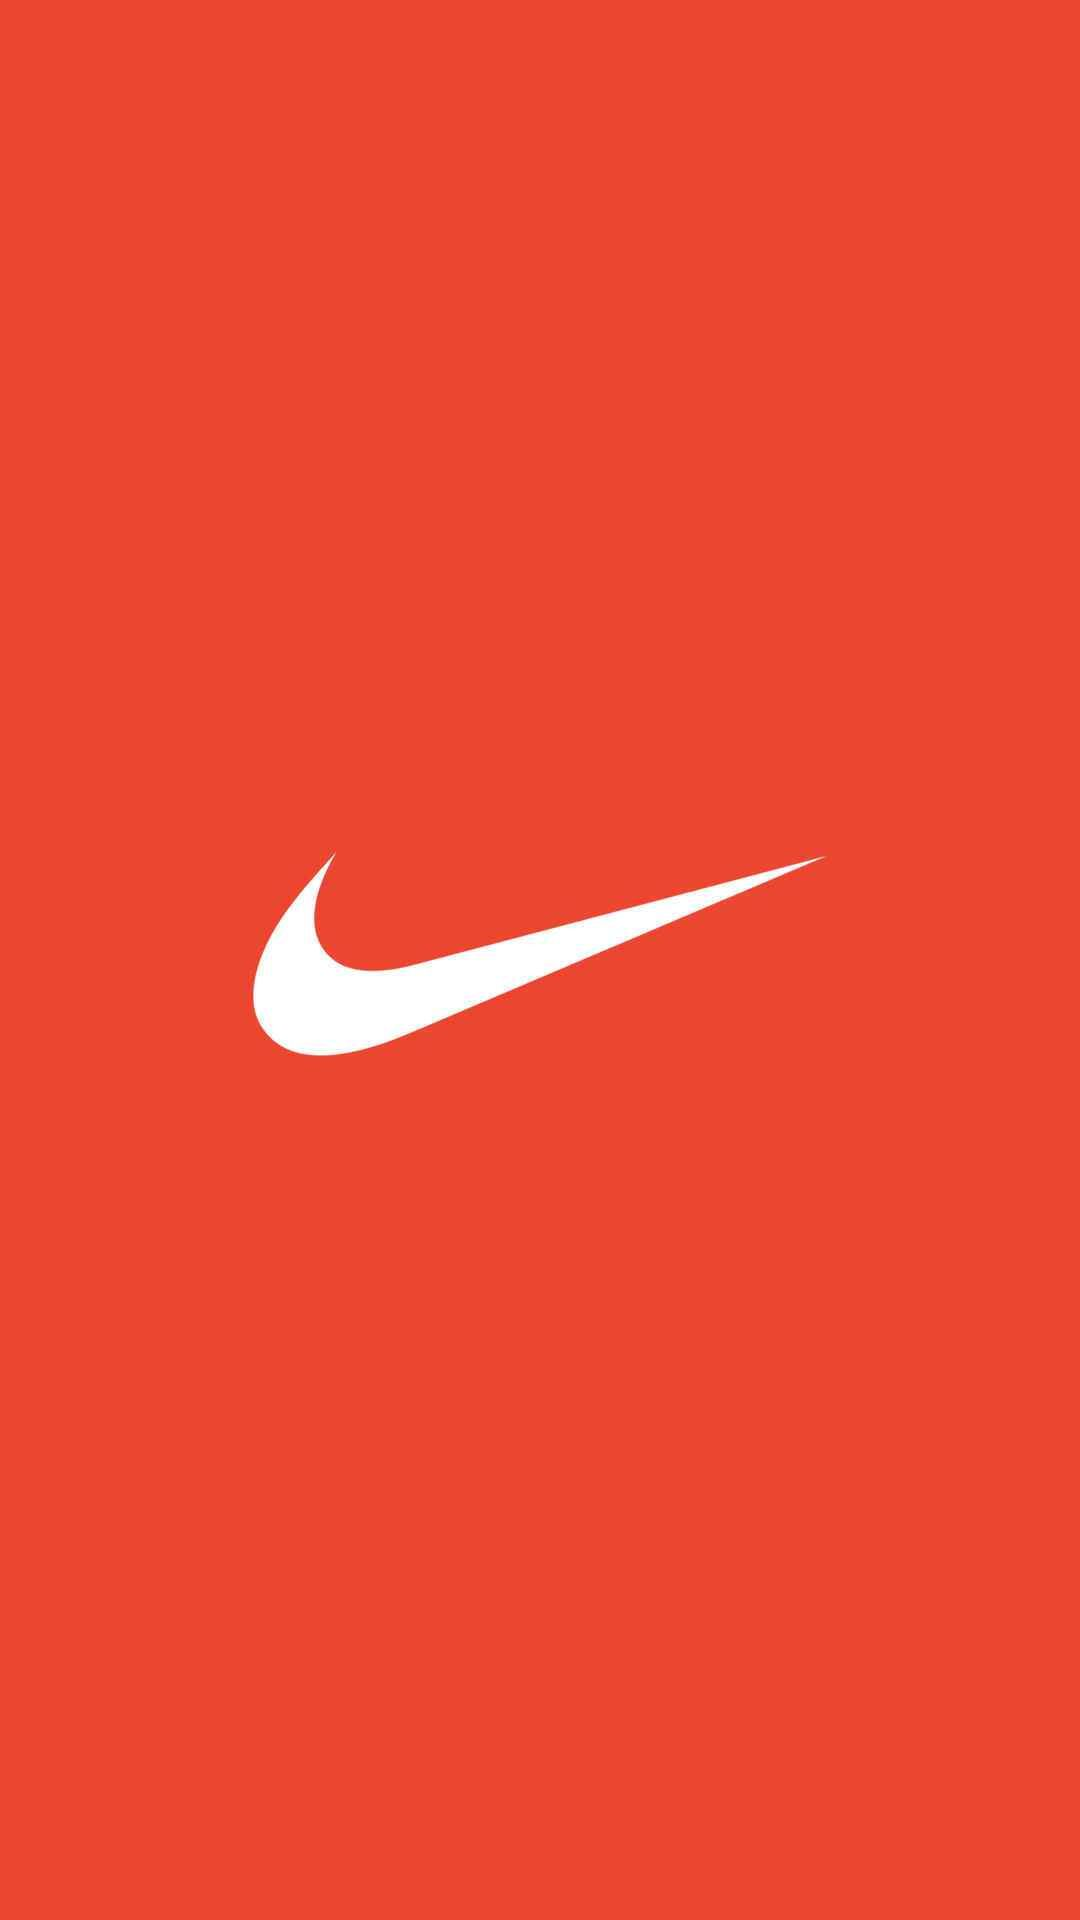 NIKE RED iPhone Wallpaper スマホ壁紙, 壁紙, Iphone 用壁紙